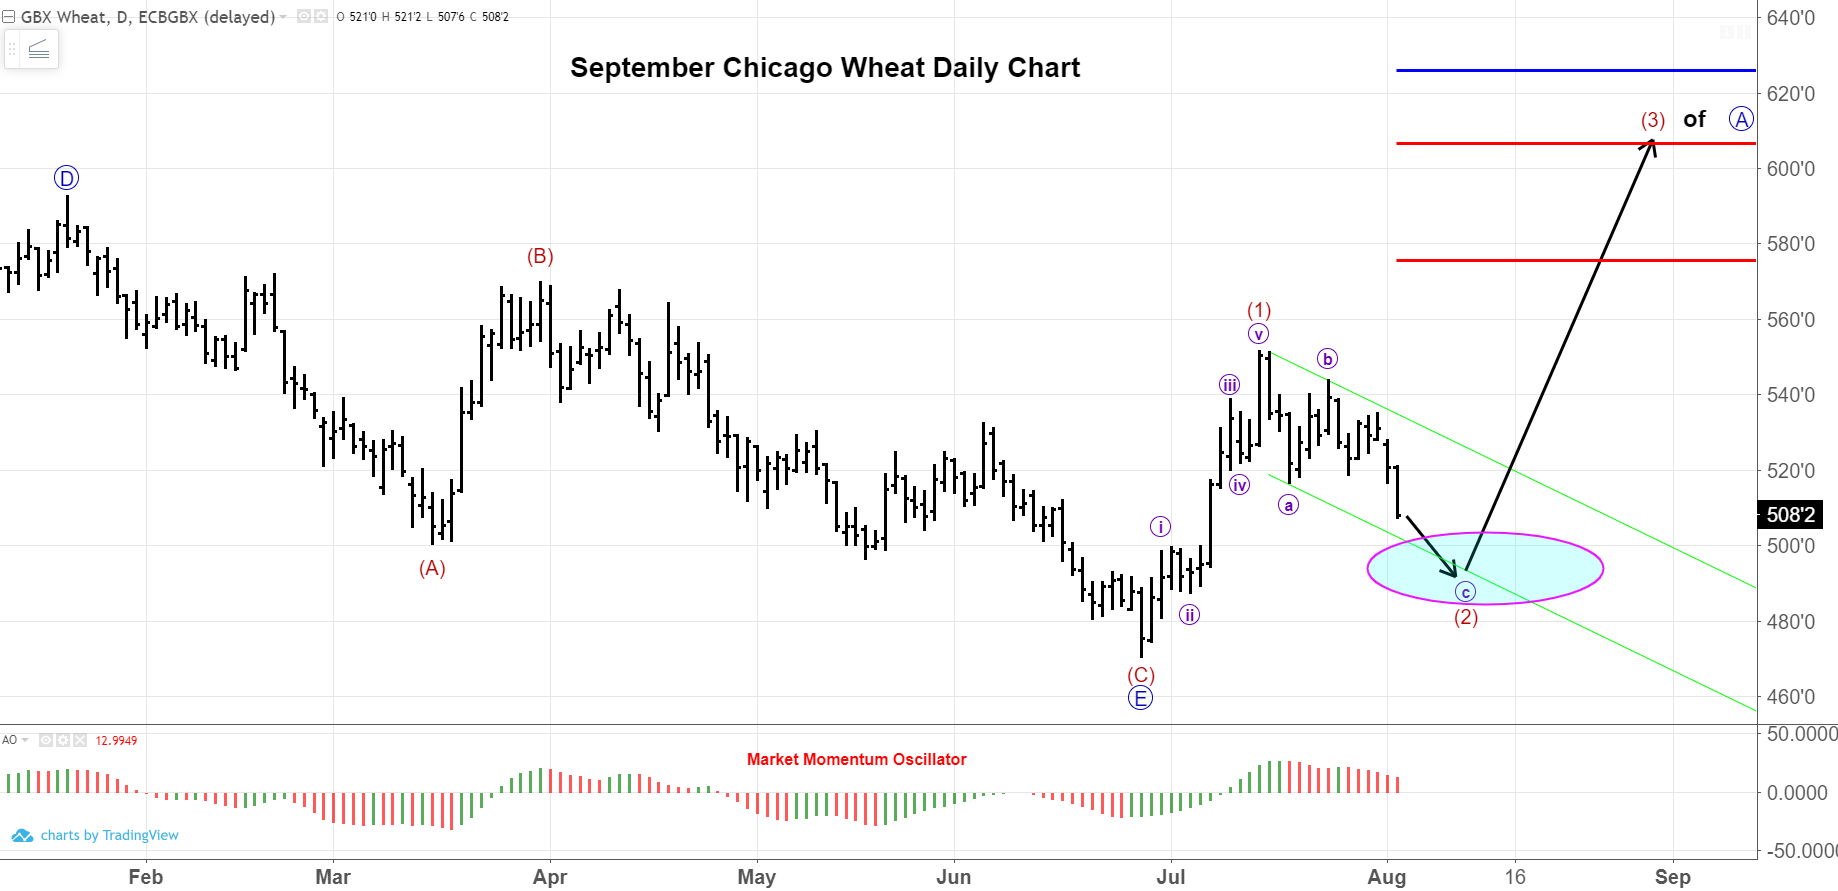 September Wheat Futures Daily Chart